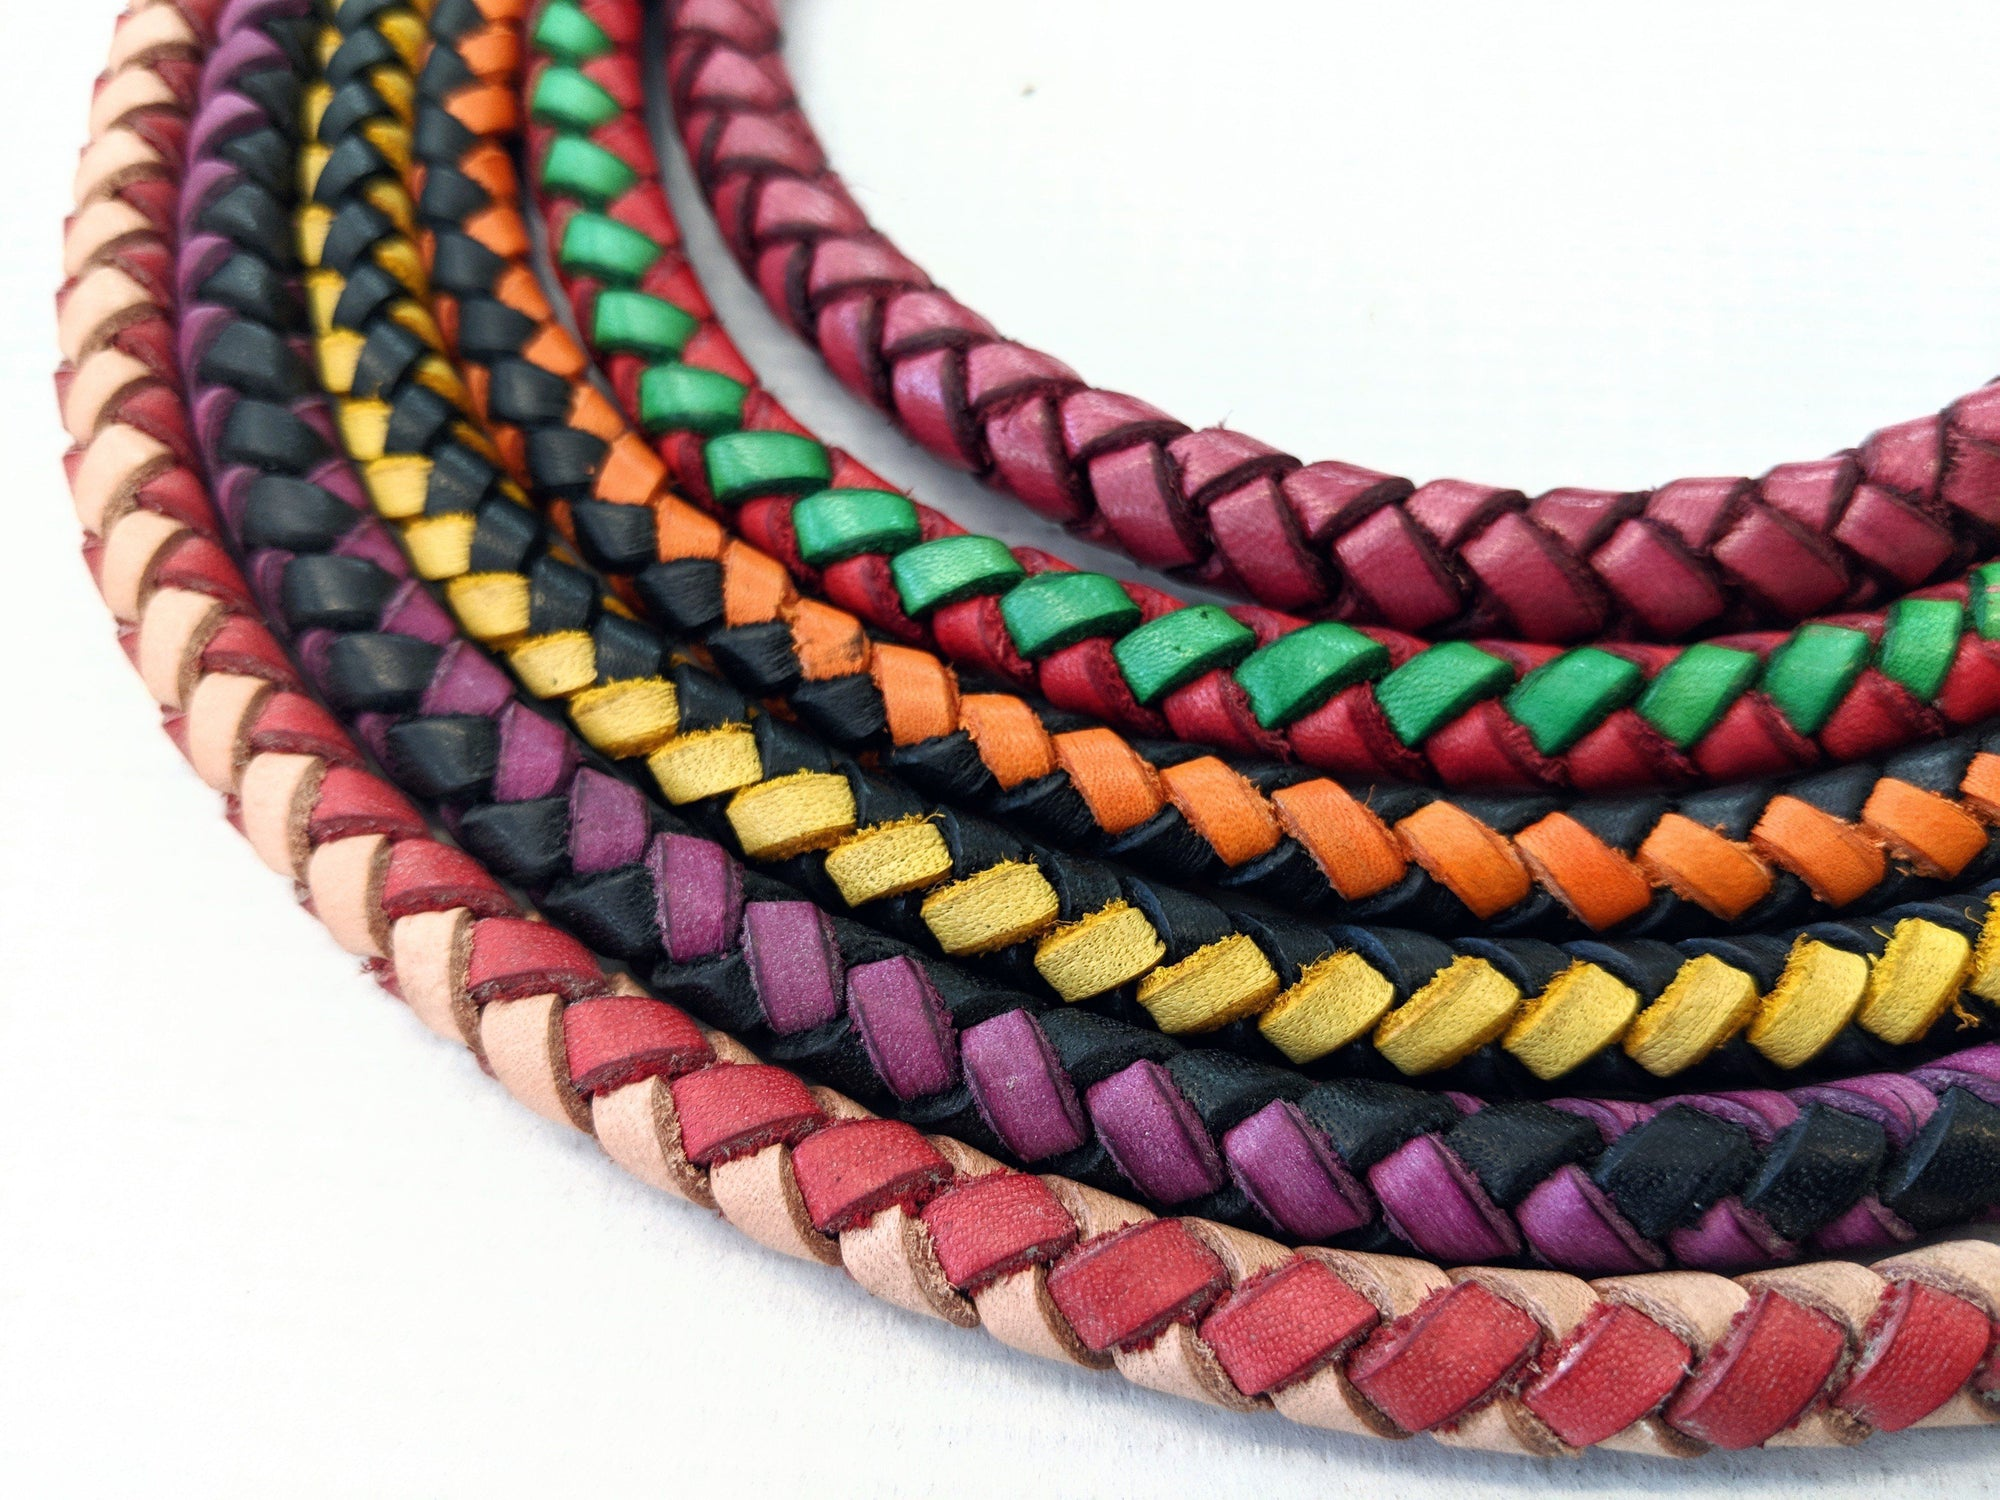 Slim Braided Leather Wallet Chain - Multi-color - Anvil Customs